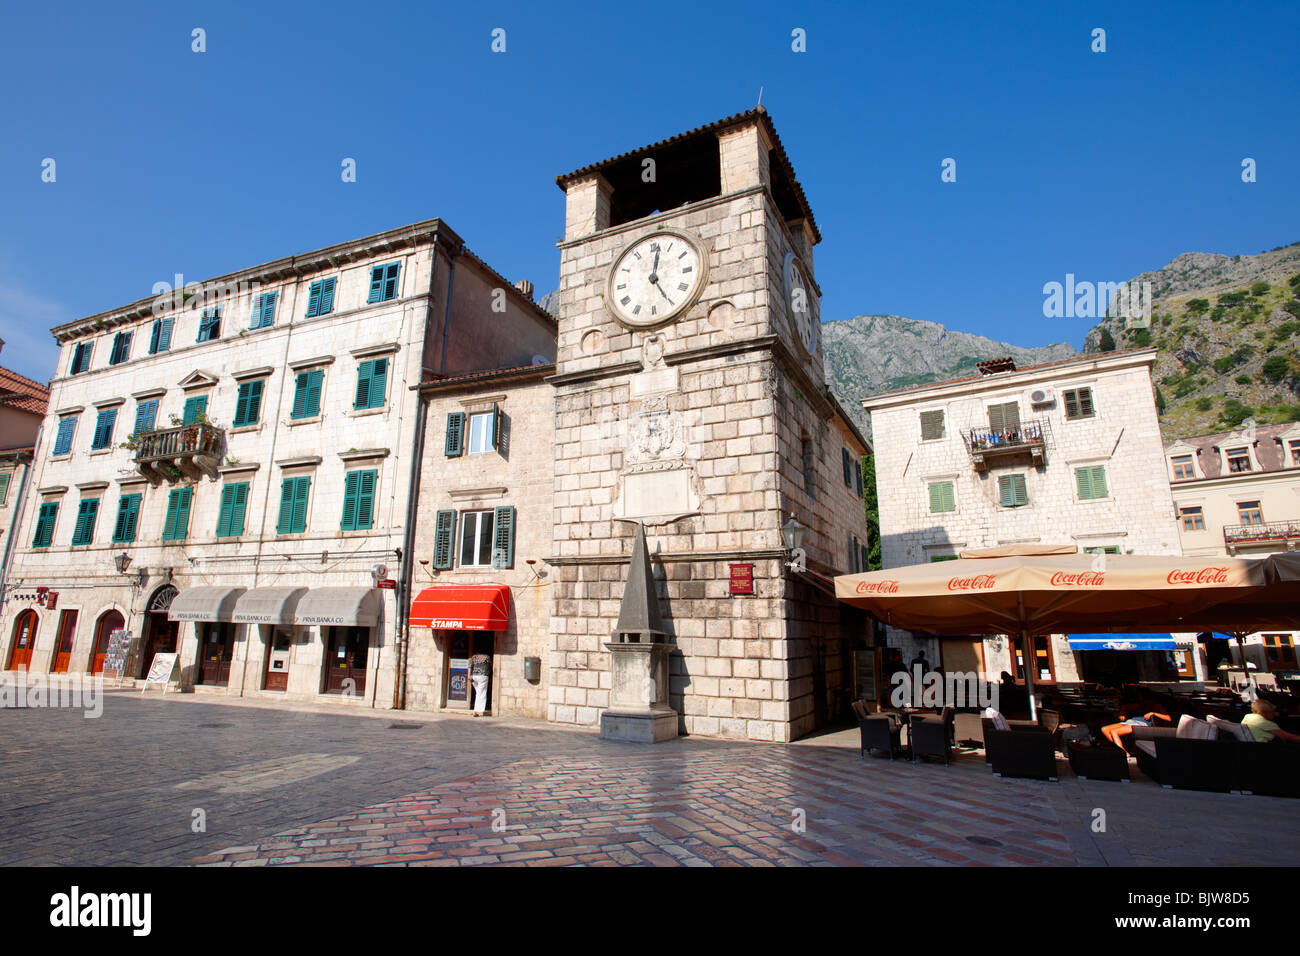 Squares of Arms, the main town square with the clock tower erected in 1602. Kotor, Montenegro. - Stock Image